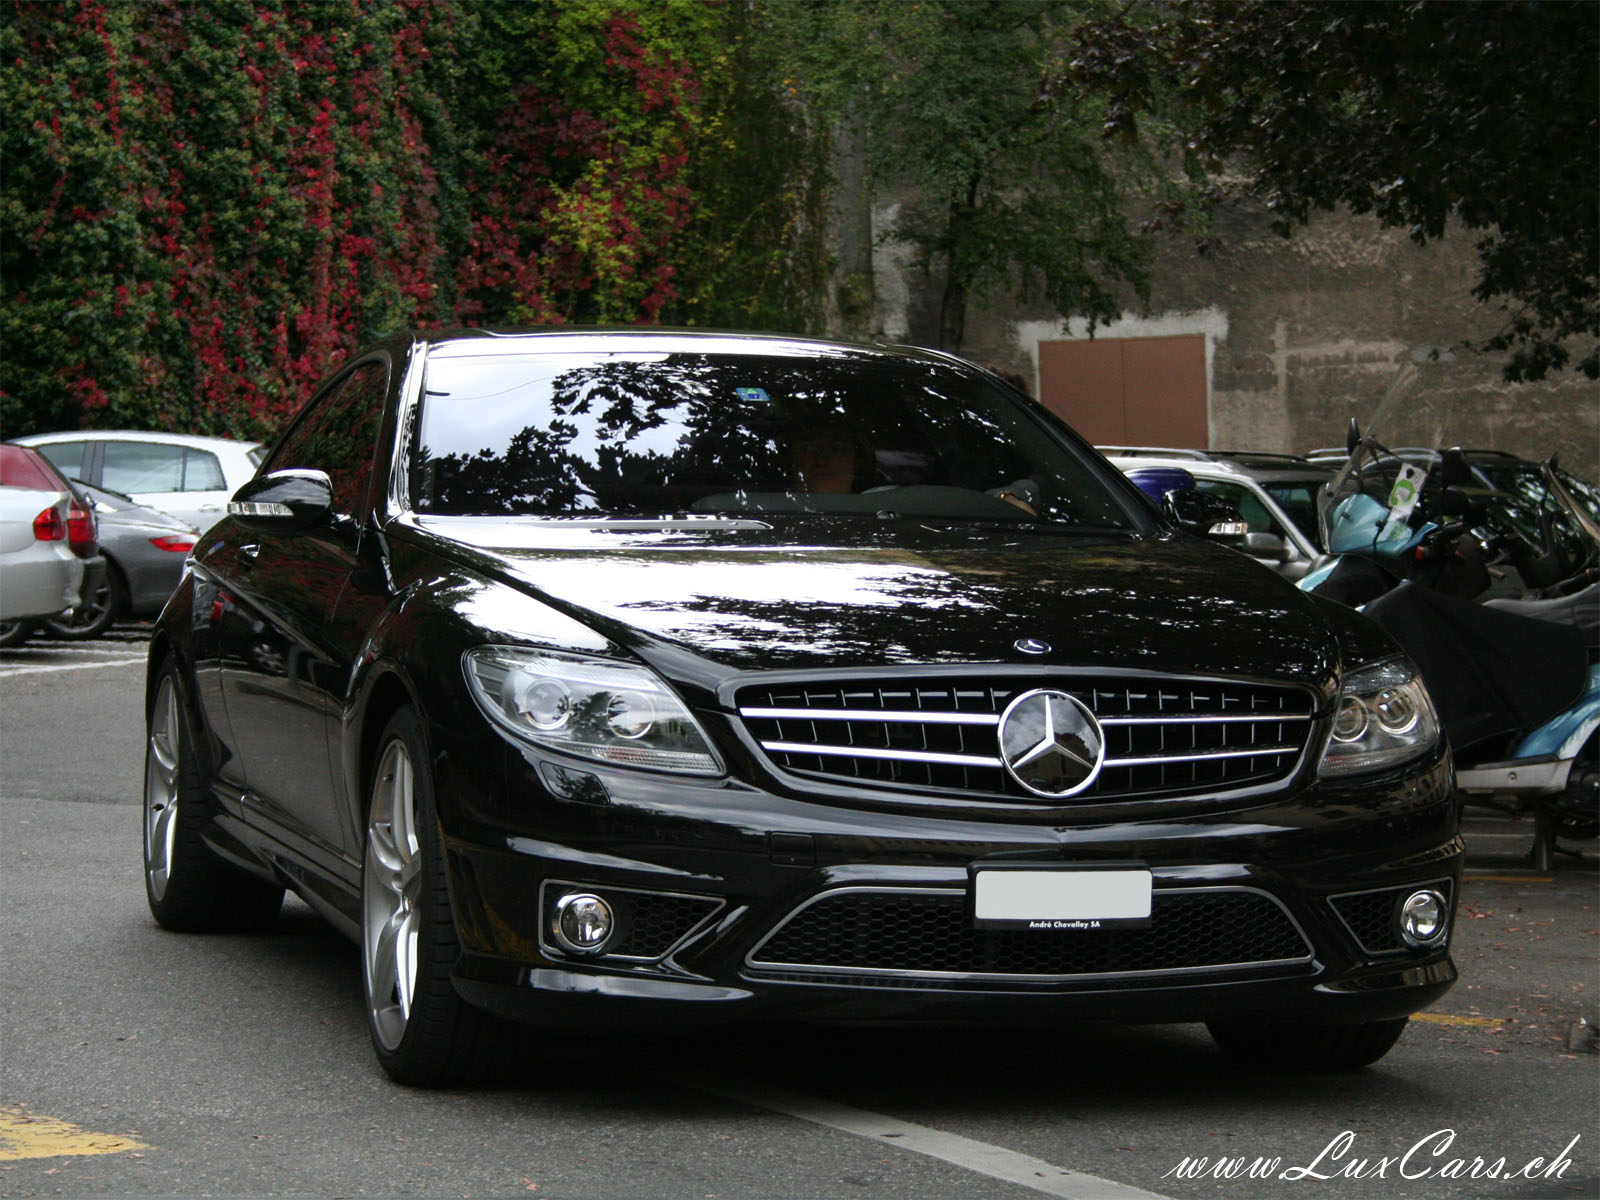 MercedesBenz CL 63 AMG technical details history photos on